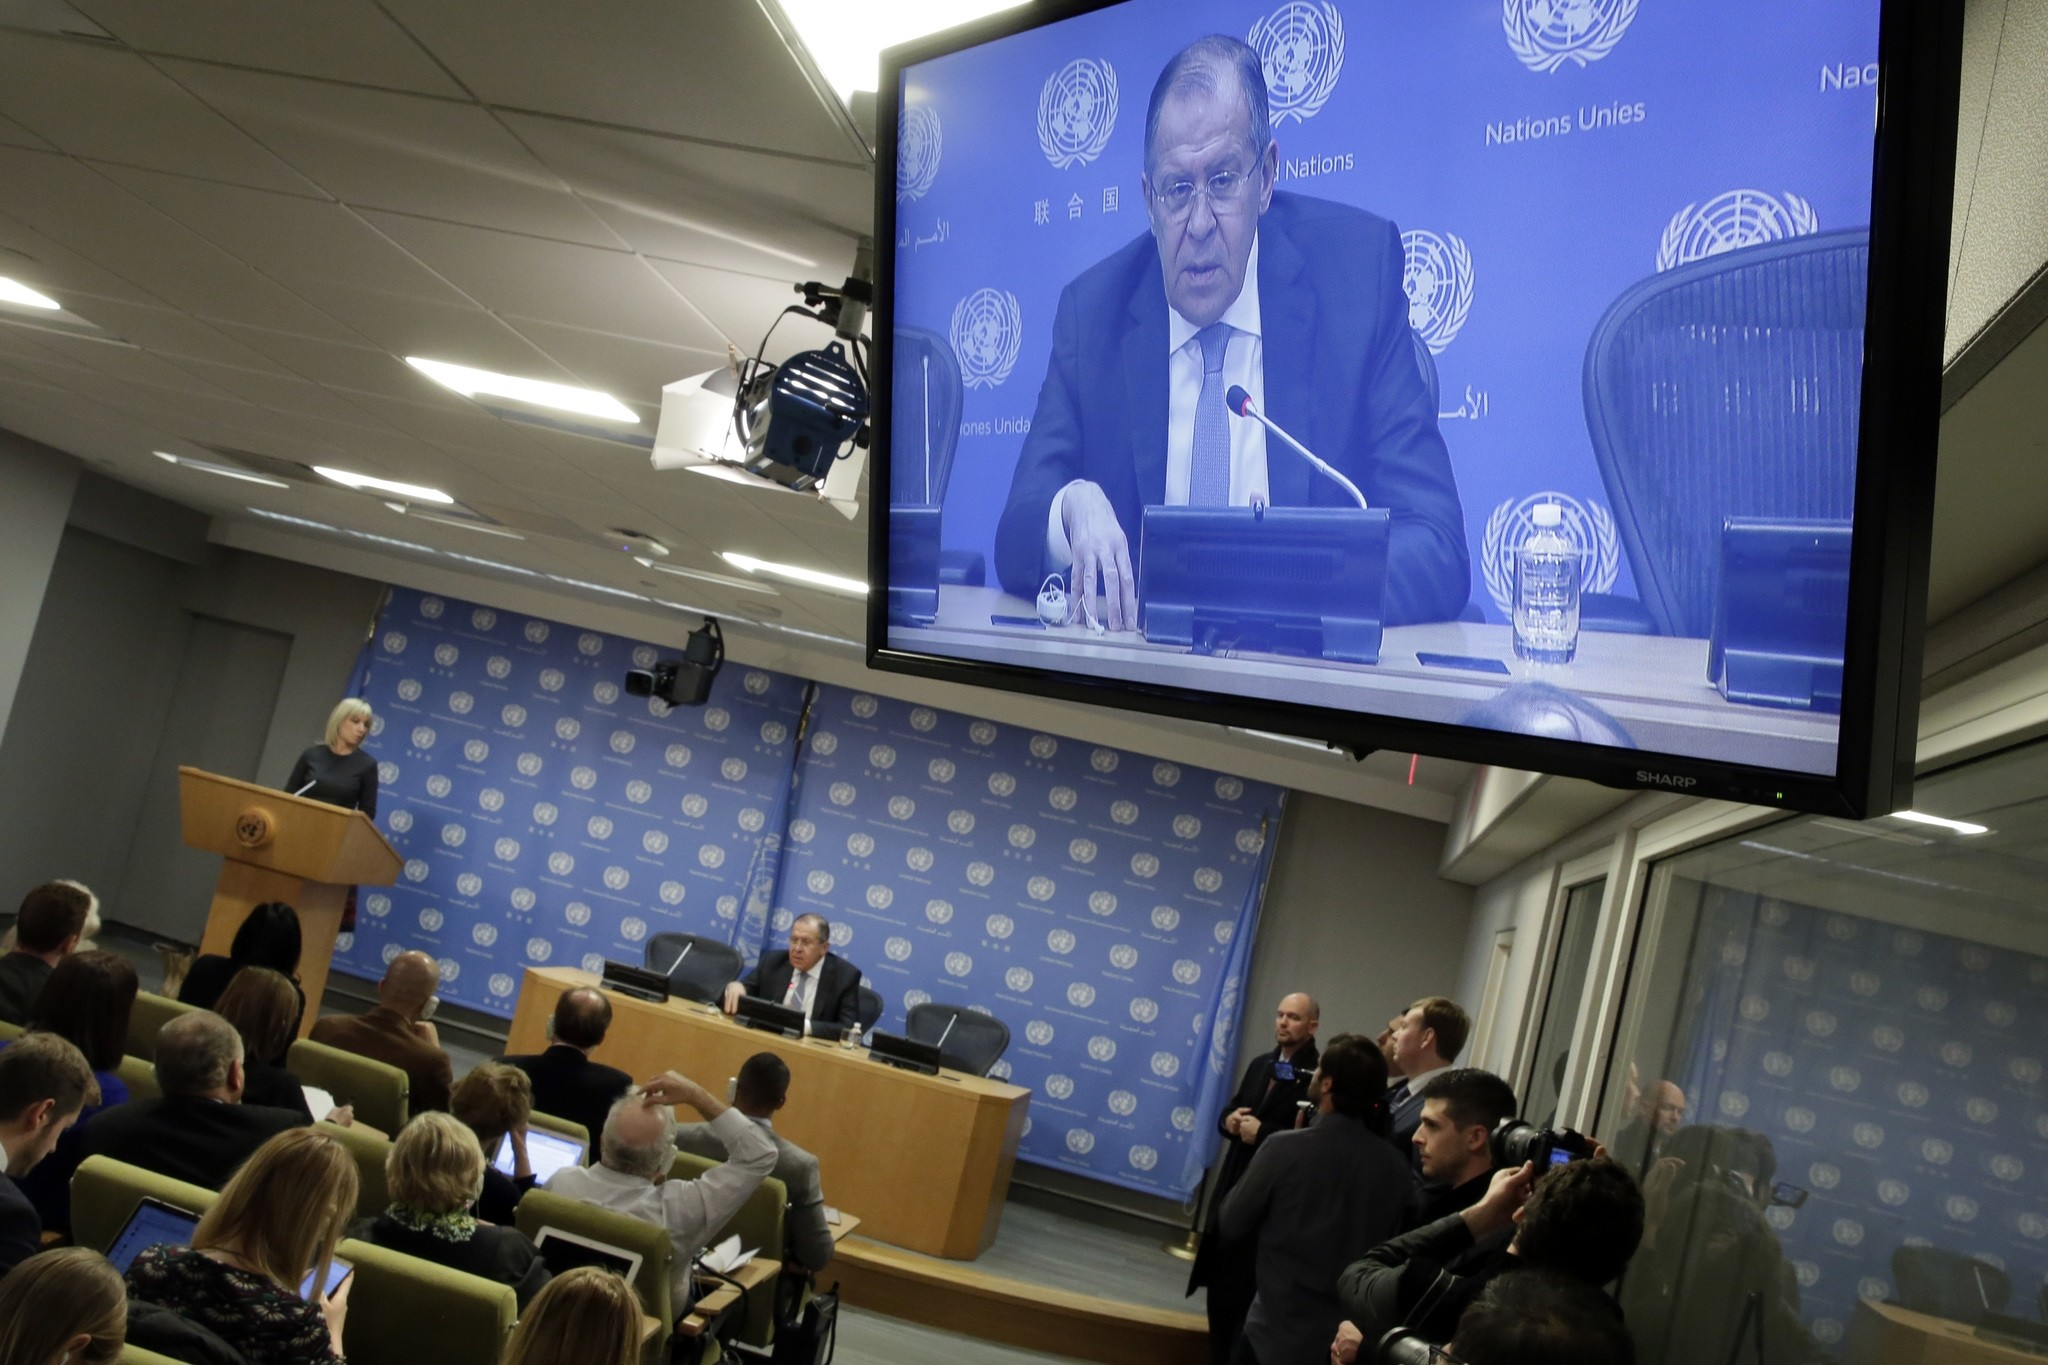 Russia's Foreign Minister Sergei Lavrov, displayed on a monitor, speaks during a news conference at United Nations headquarters, Friday, Jan. 19, 2018. (AP Photo)